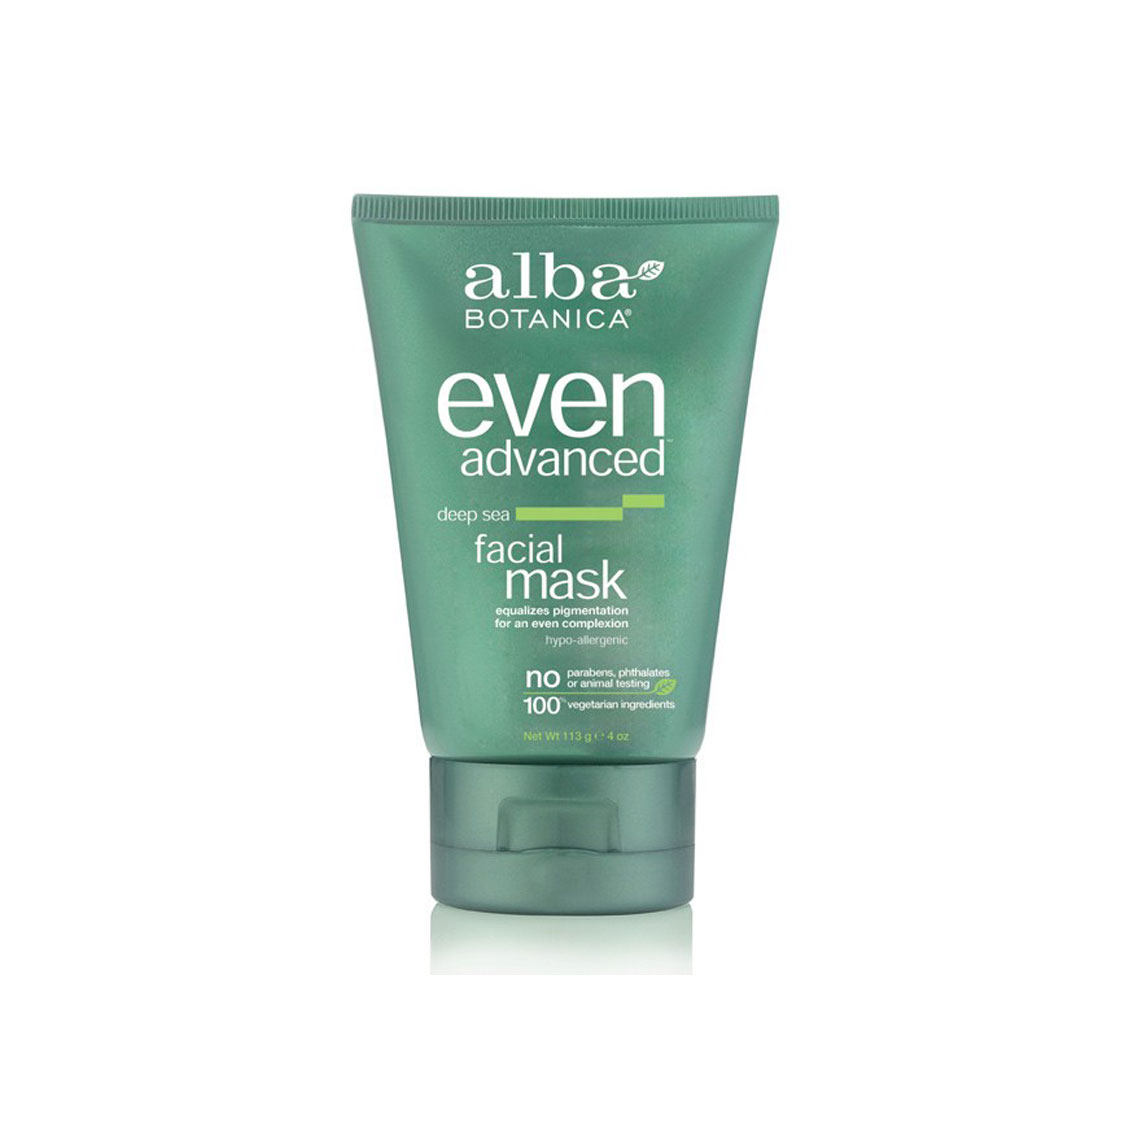 Alba Botanica Even Advanced Deep Sea Facial Mask Маска для лица с морскими водорослями (113 g) AL00323